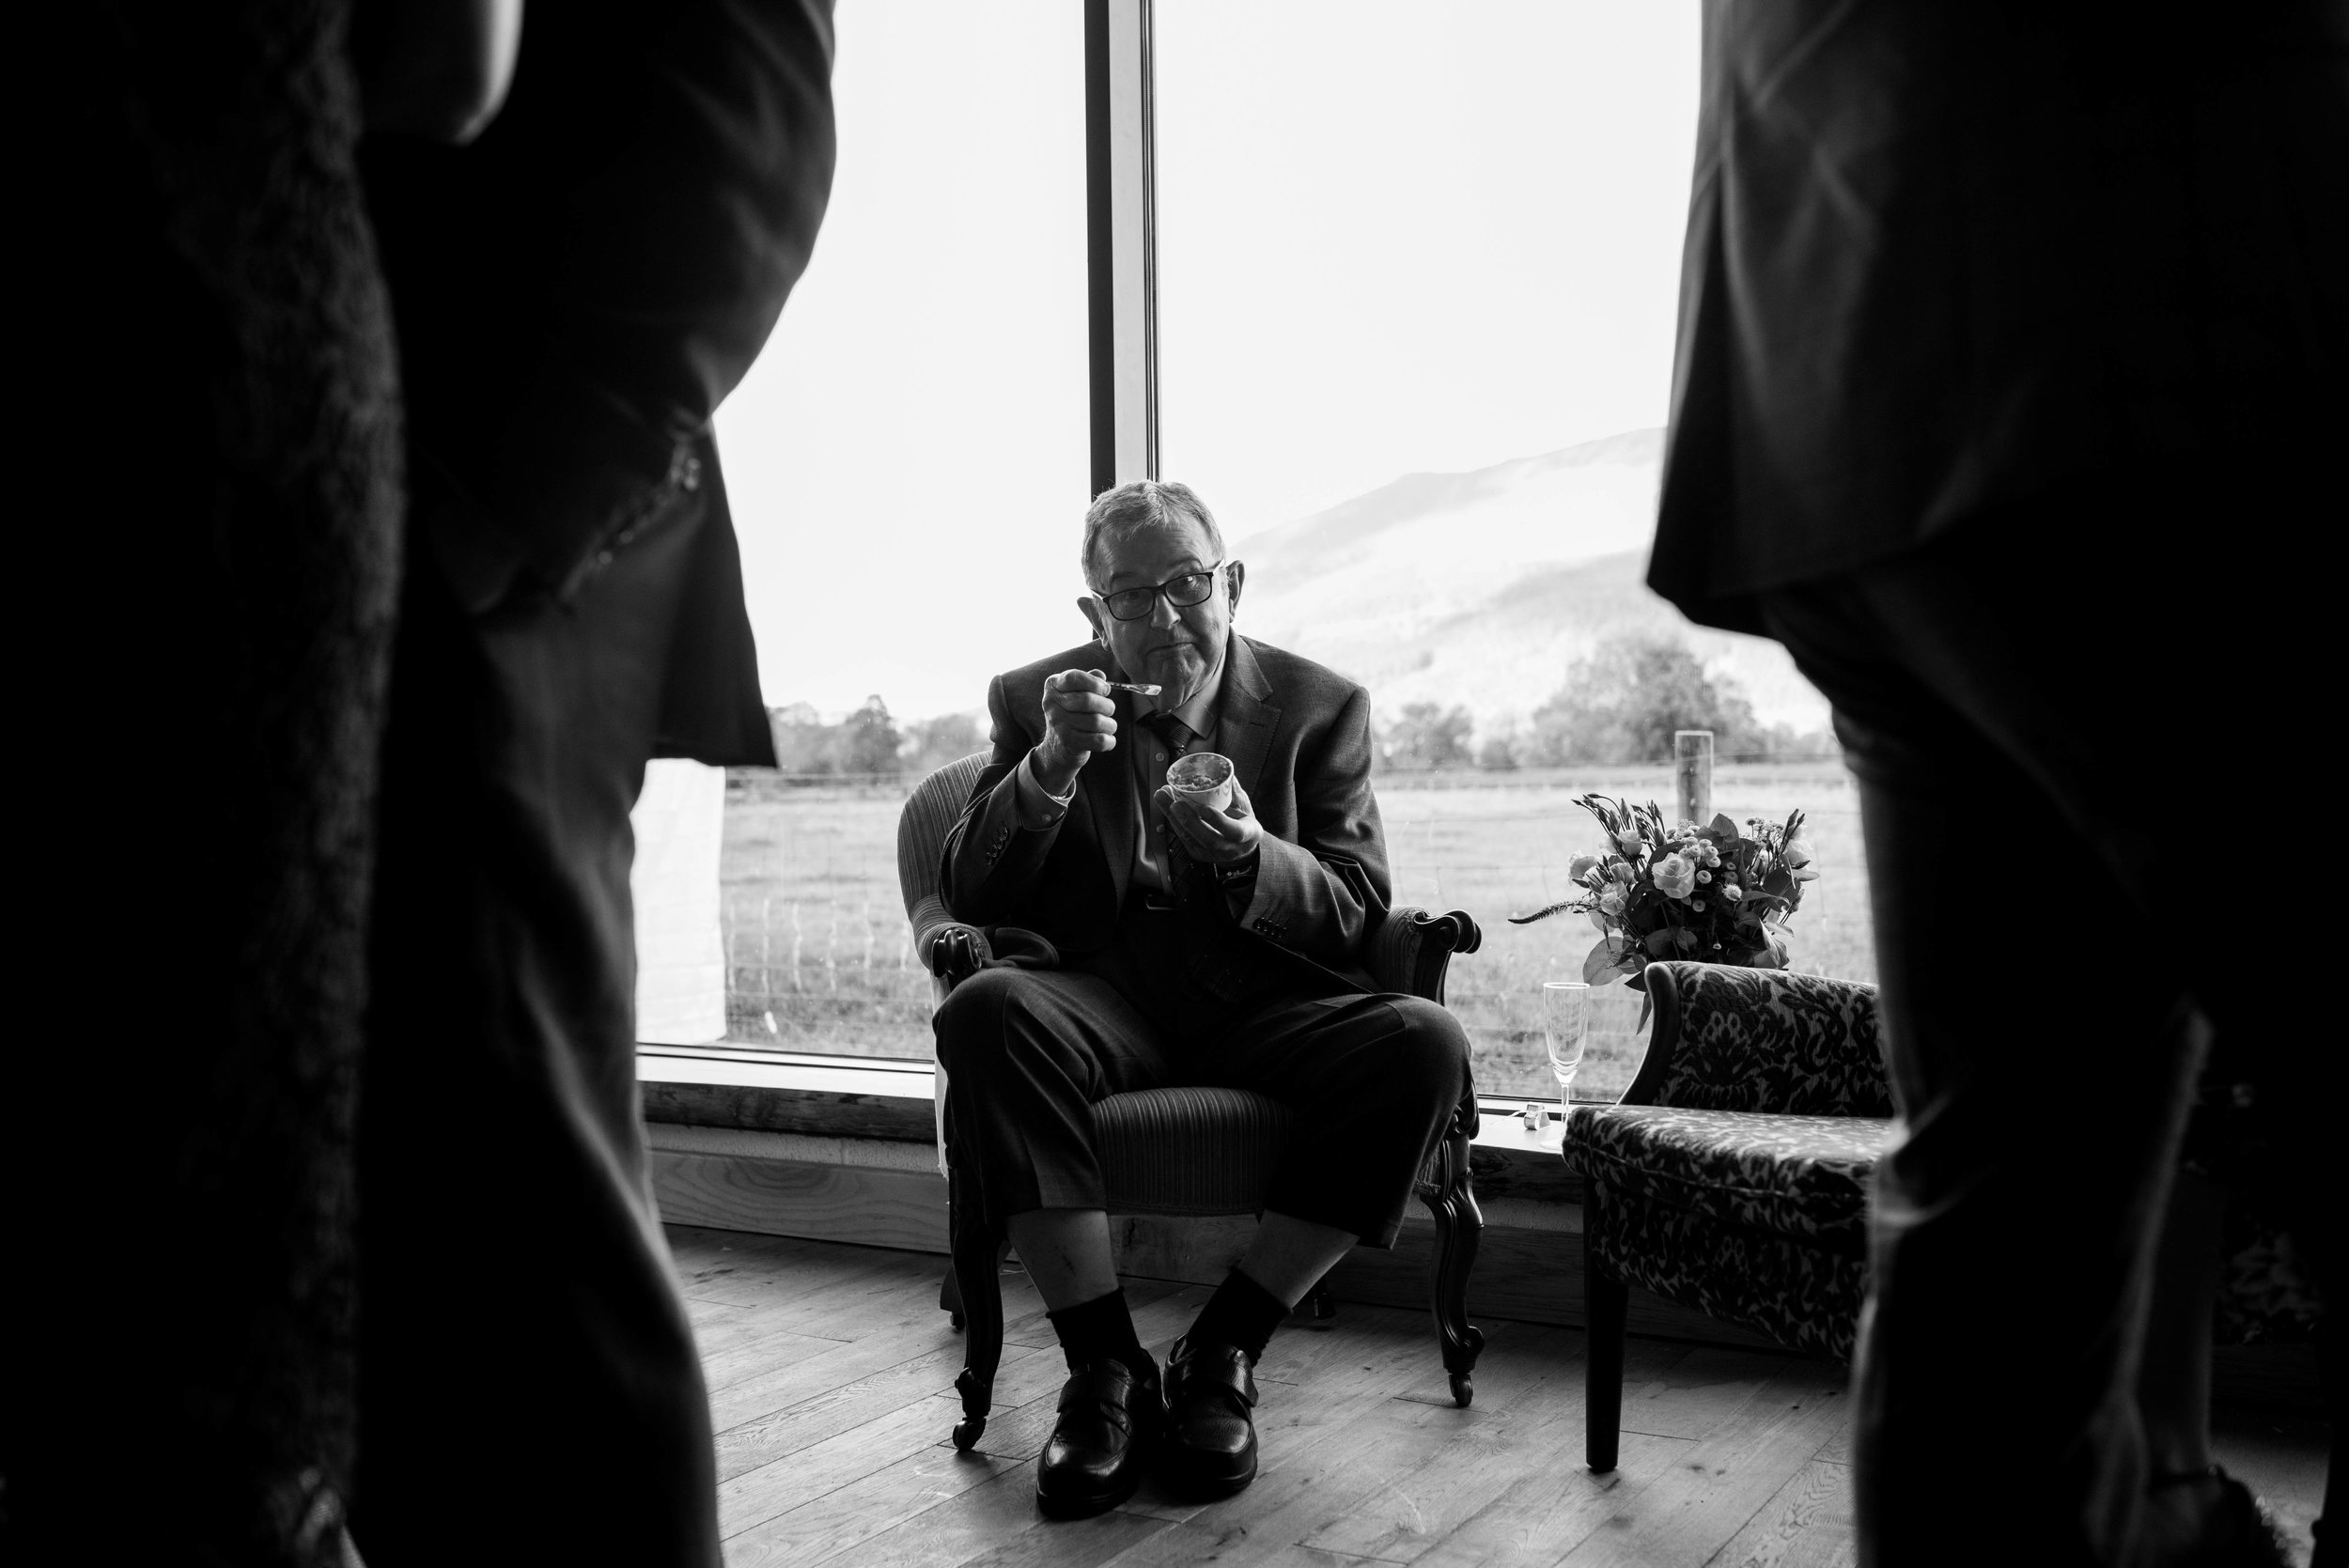 A male wedding guest sits by the window to eat his ice cream